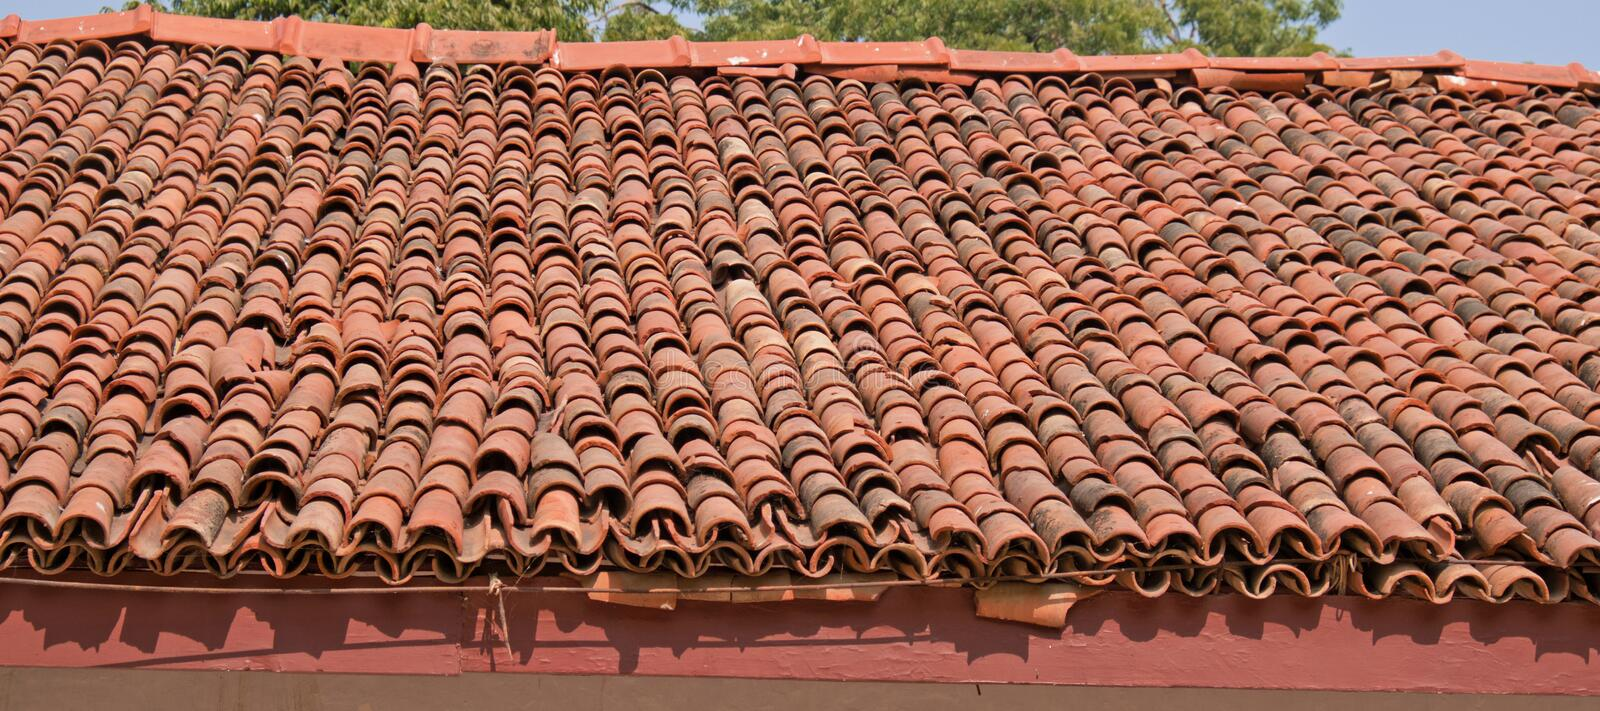 242 India Roof Tile Photos - Free & Royalty-Free Stock Photos from  Dreamstime